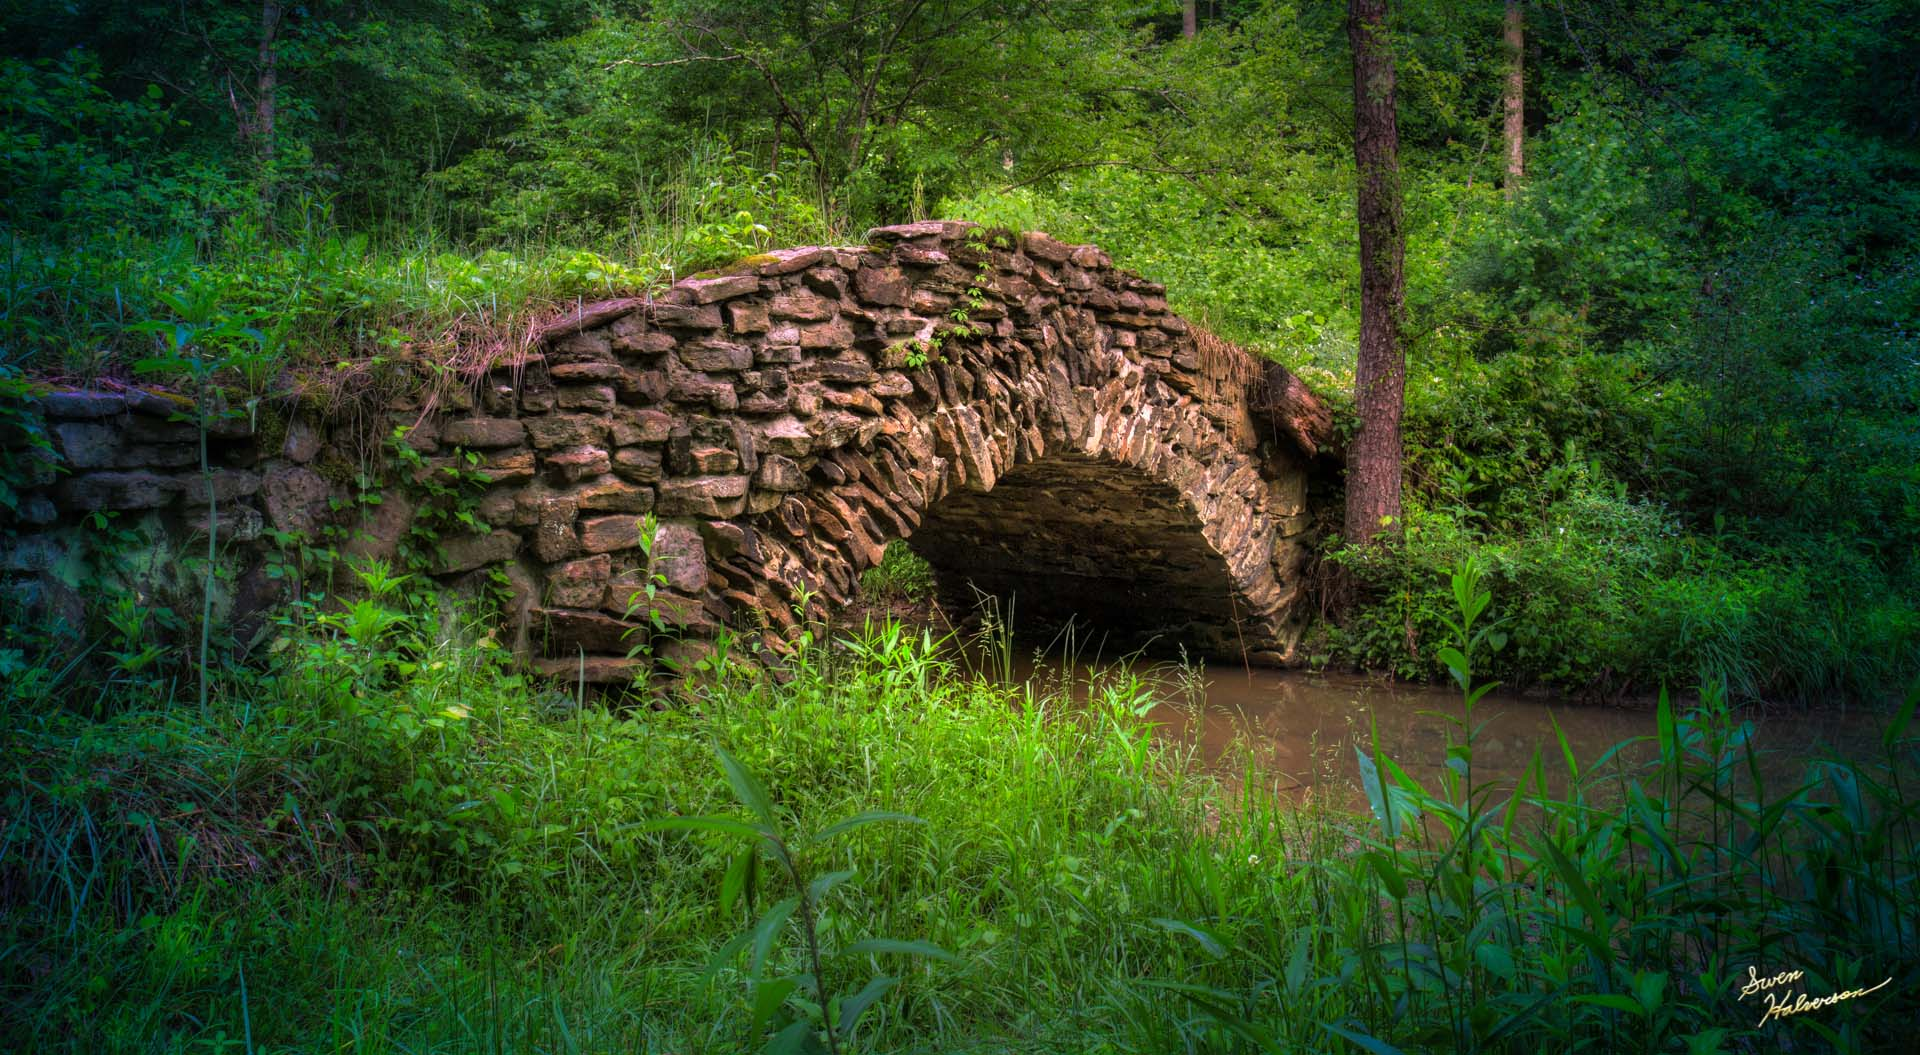 Theme: Bridge | Title: Rock Bridge 2